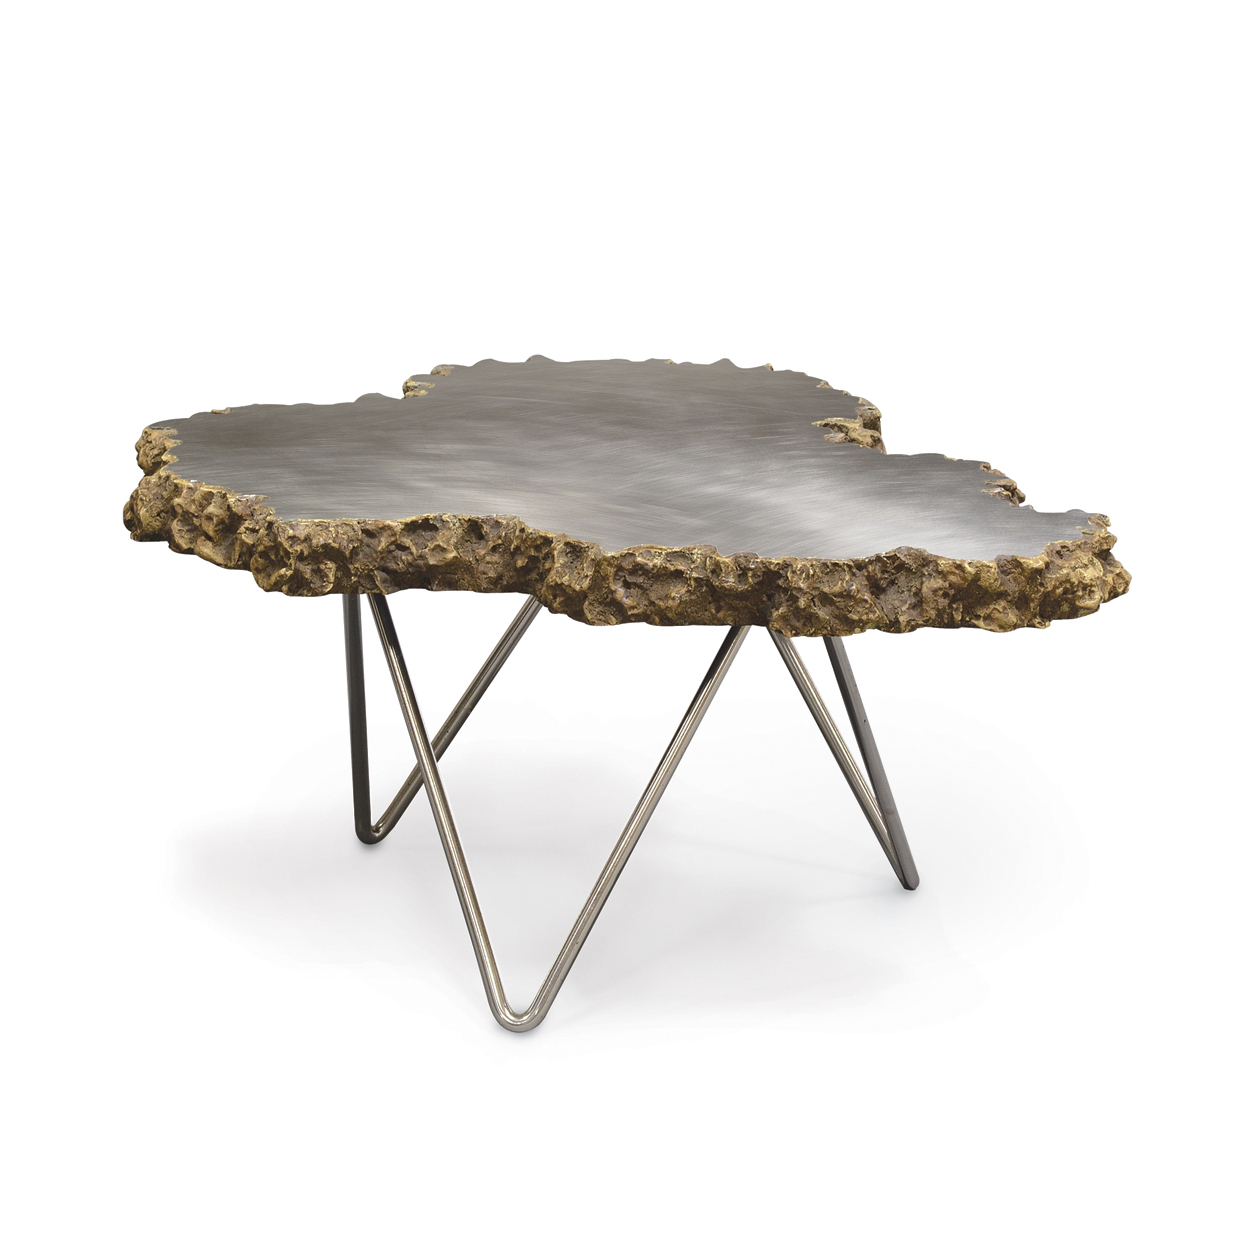 Small Stainless Steel and Lava Stone Coffee Table